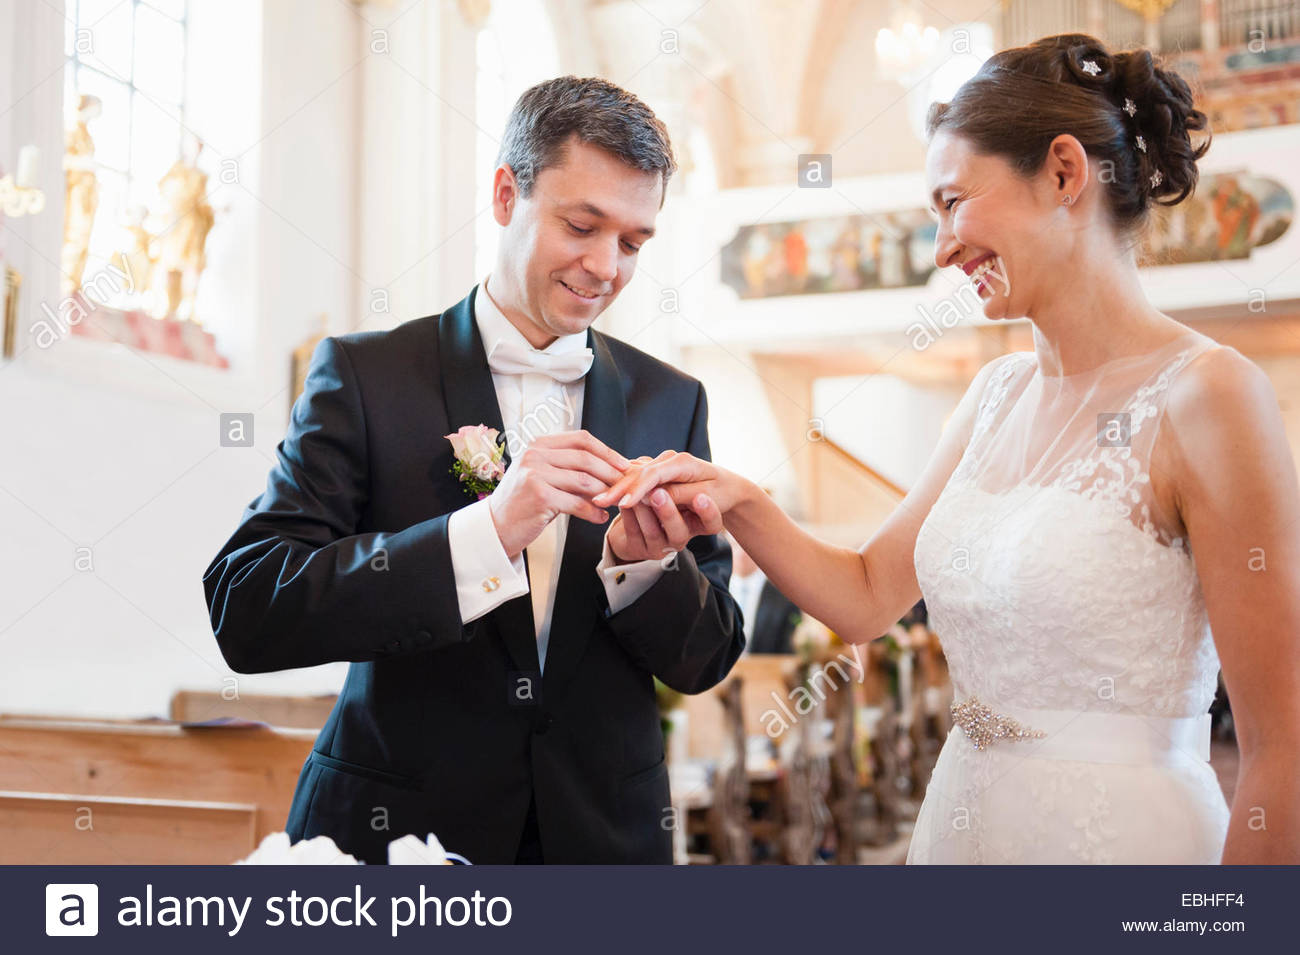 Bridegroom placing wedding ring on brides finger in church - Stock Image